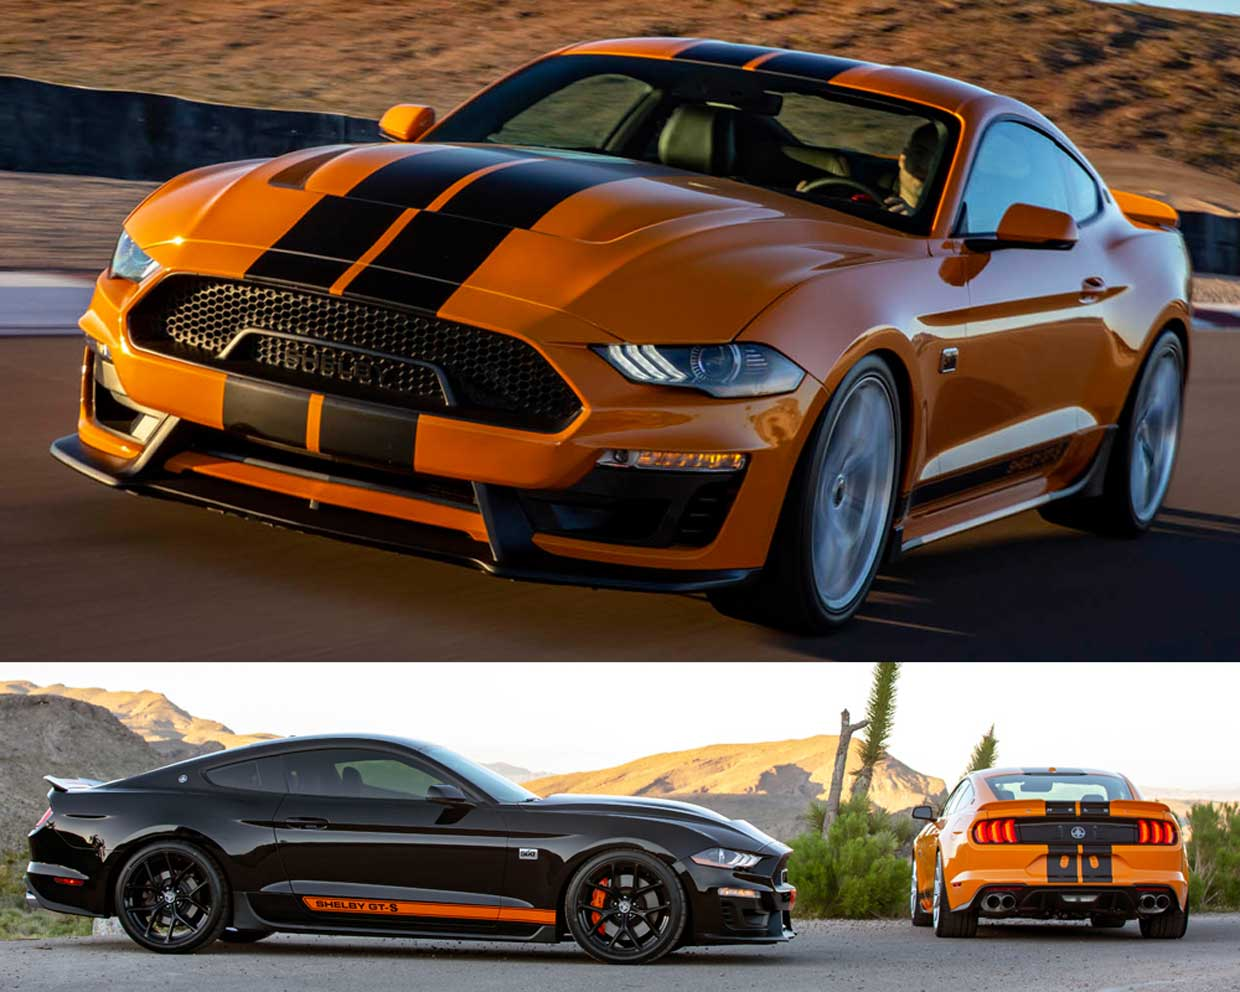 Rental Car Company Has 600hp Shelby Mustangs in Their Fleet